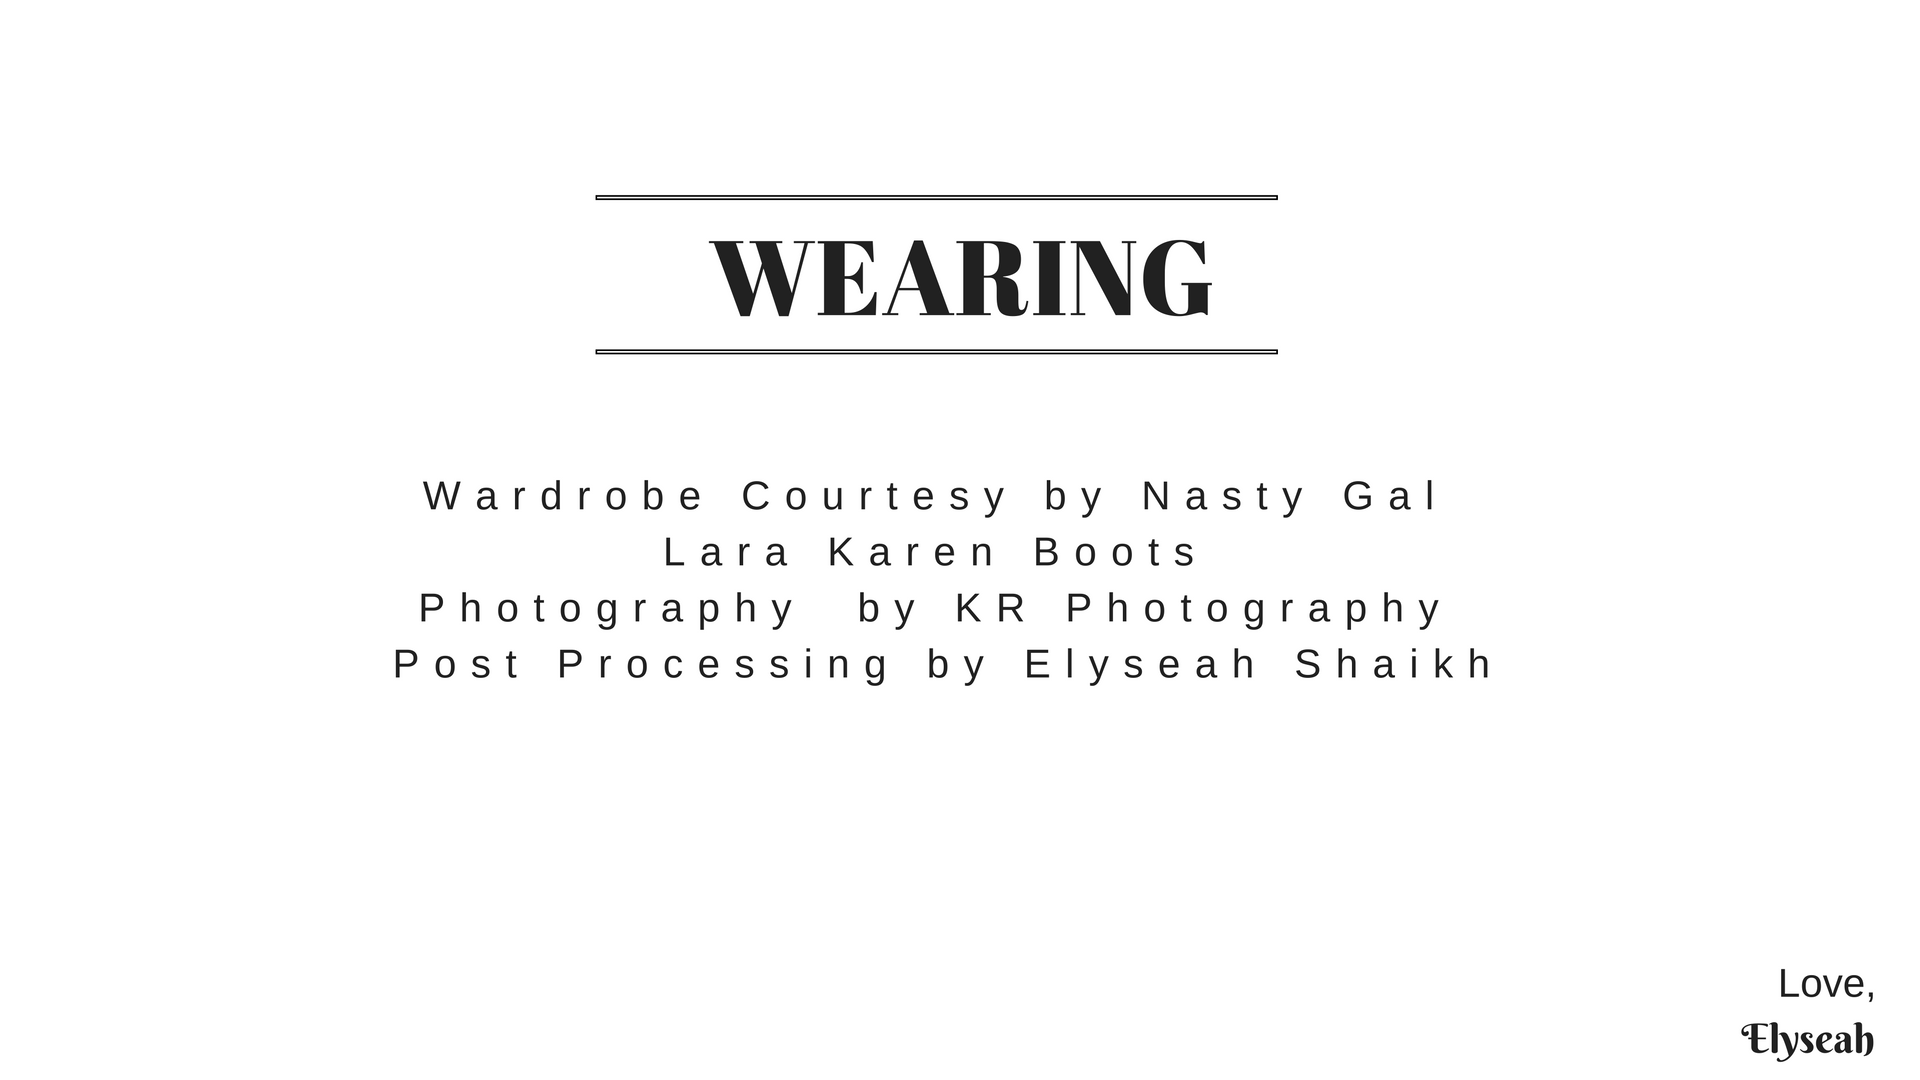 addwearingwardrobe-courtesy-by-mili-desai-label-lara-karen-boots-photography-by-kr-photography-post-processing-by-elyseah-shaikhloveelyseah-a-little-bit-of-body-text